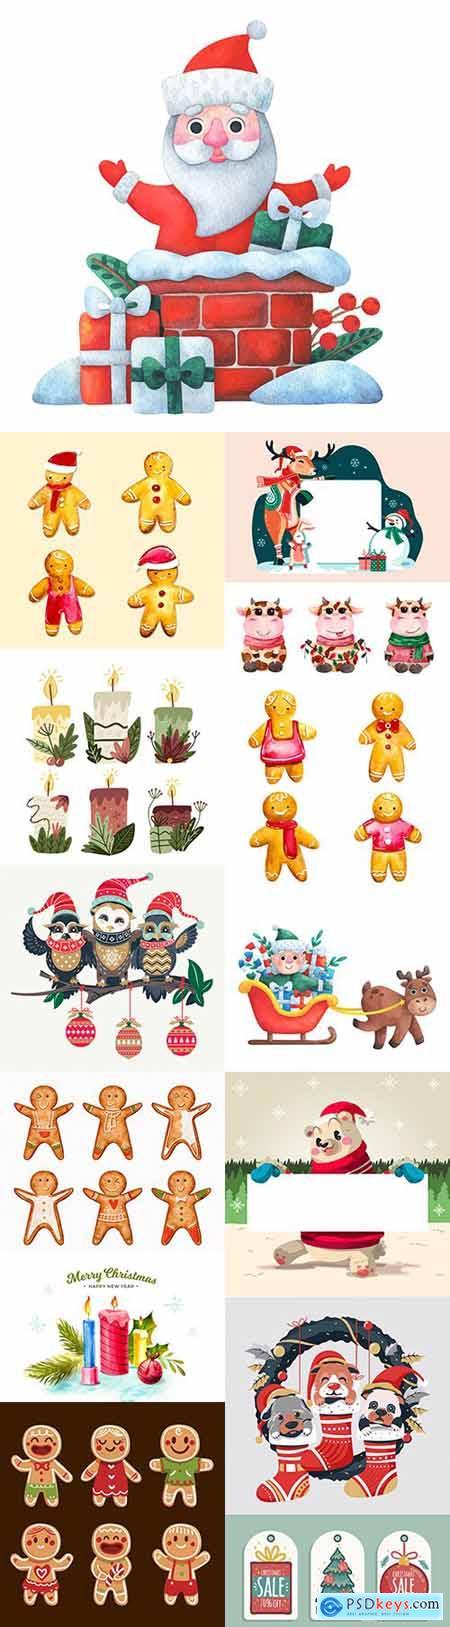 Fun Santa and Christmas characters cartoon illustration